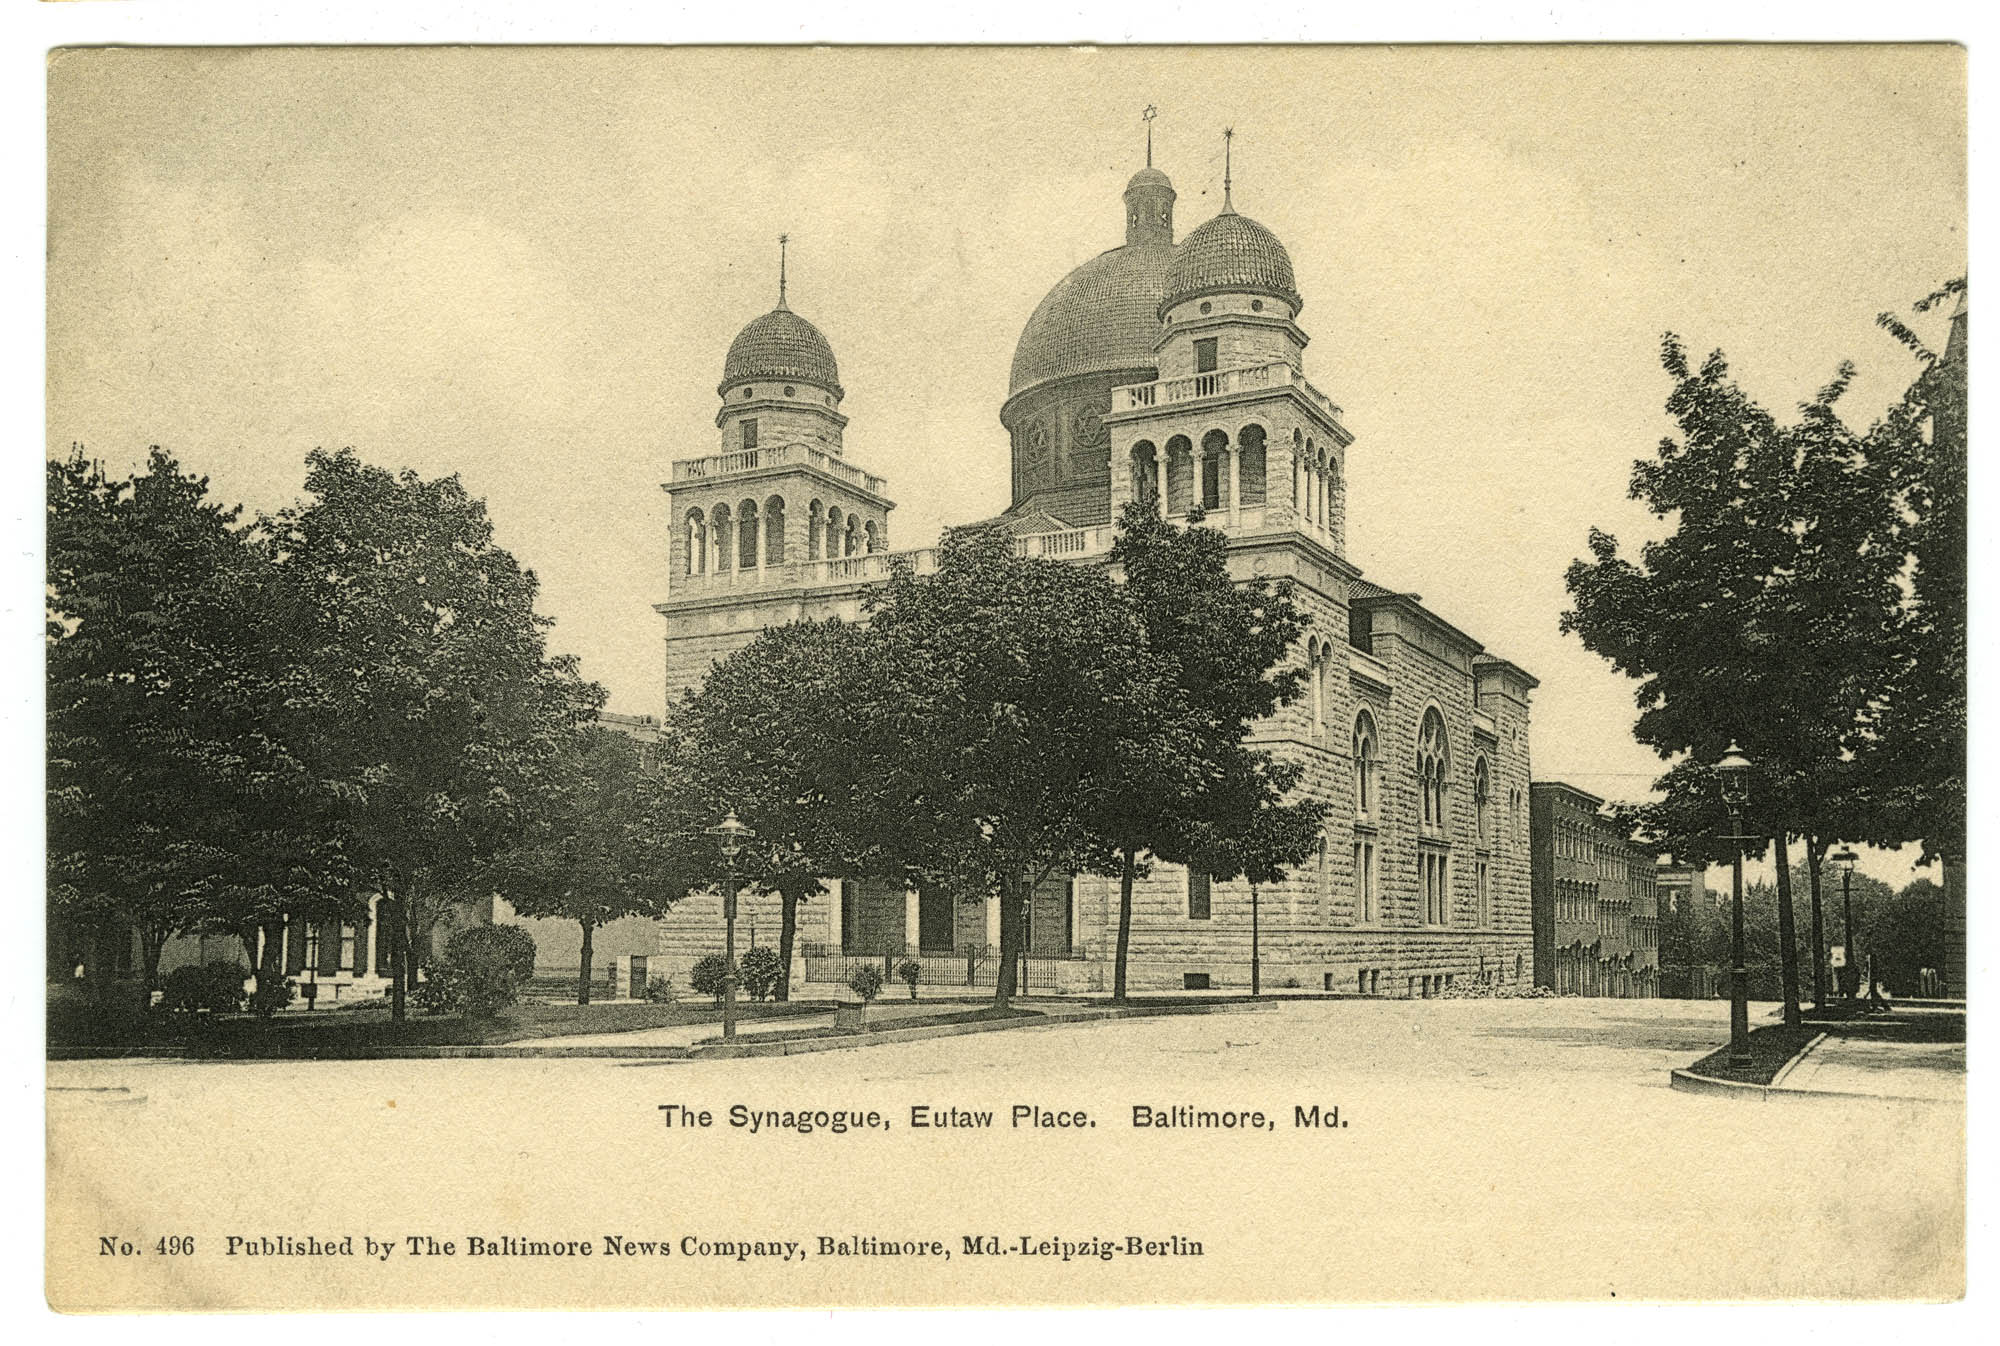 The Synagogue, Eutaw Place. Baltimore, Md.